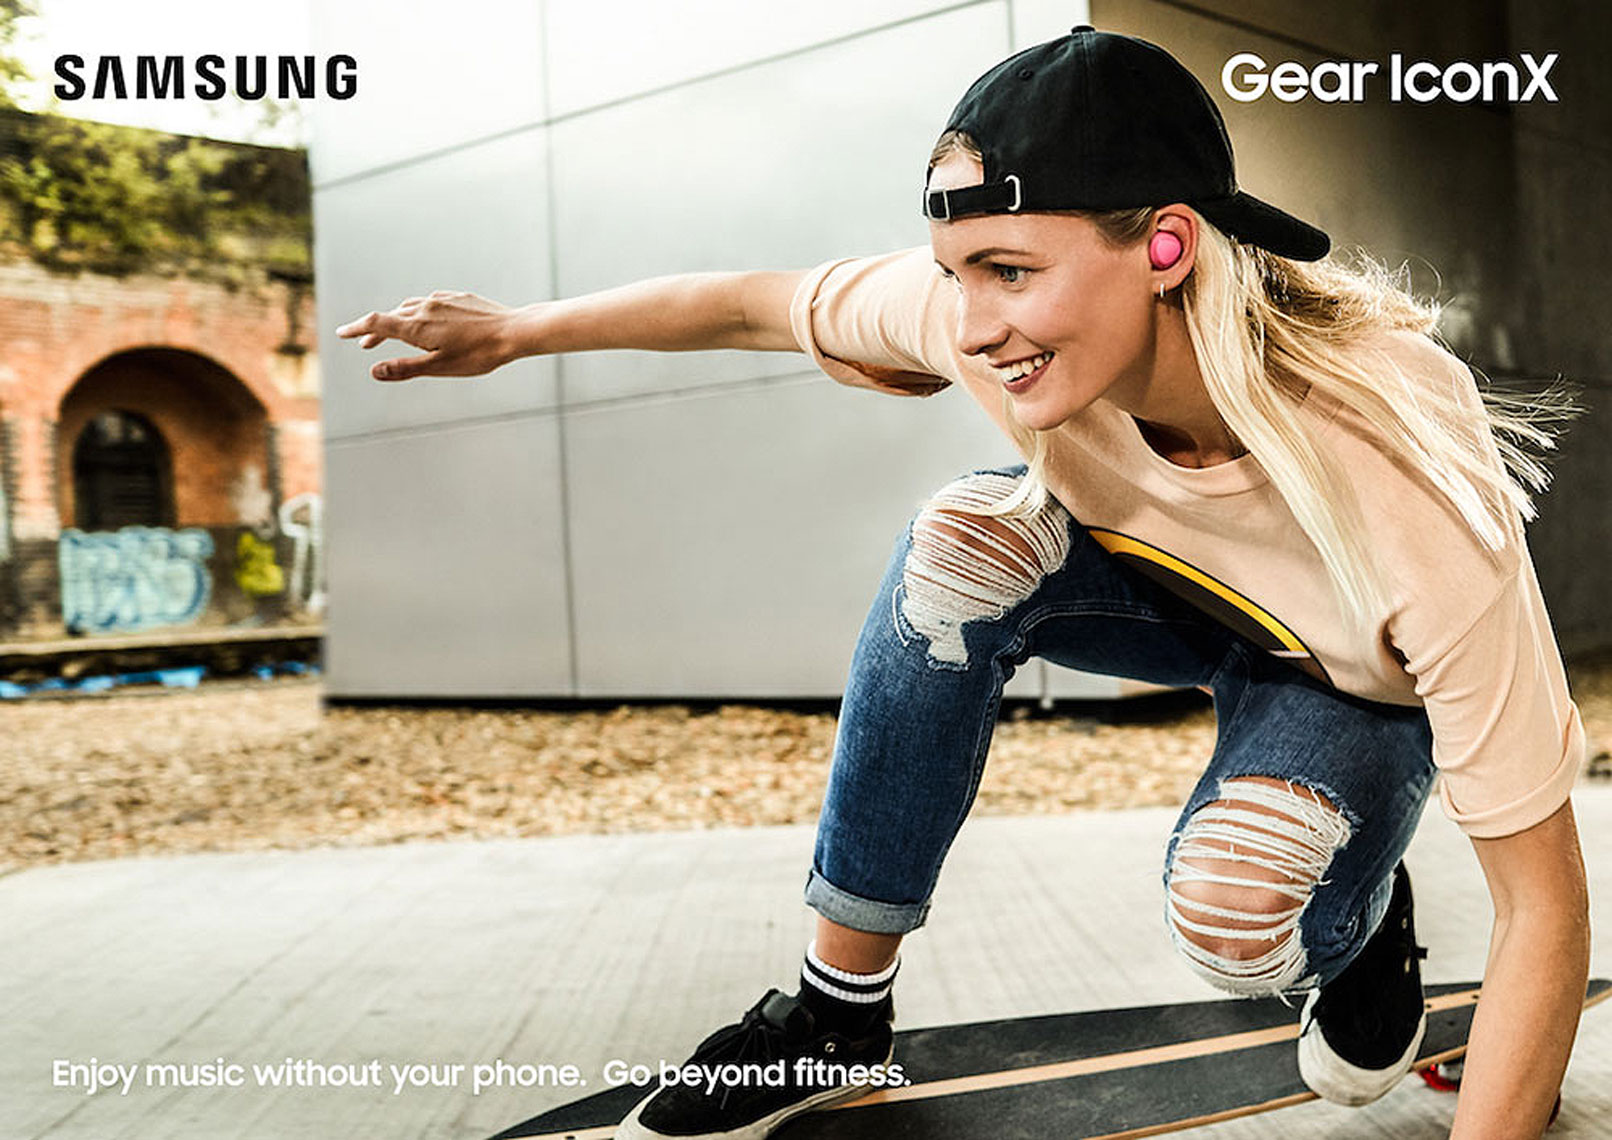 issie-gibbons-fashion-stylist-samsung-global-campaign-skater-longboard